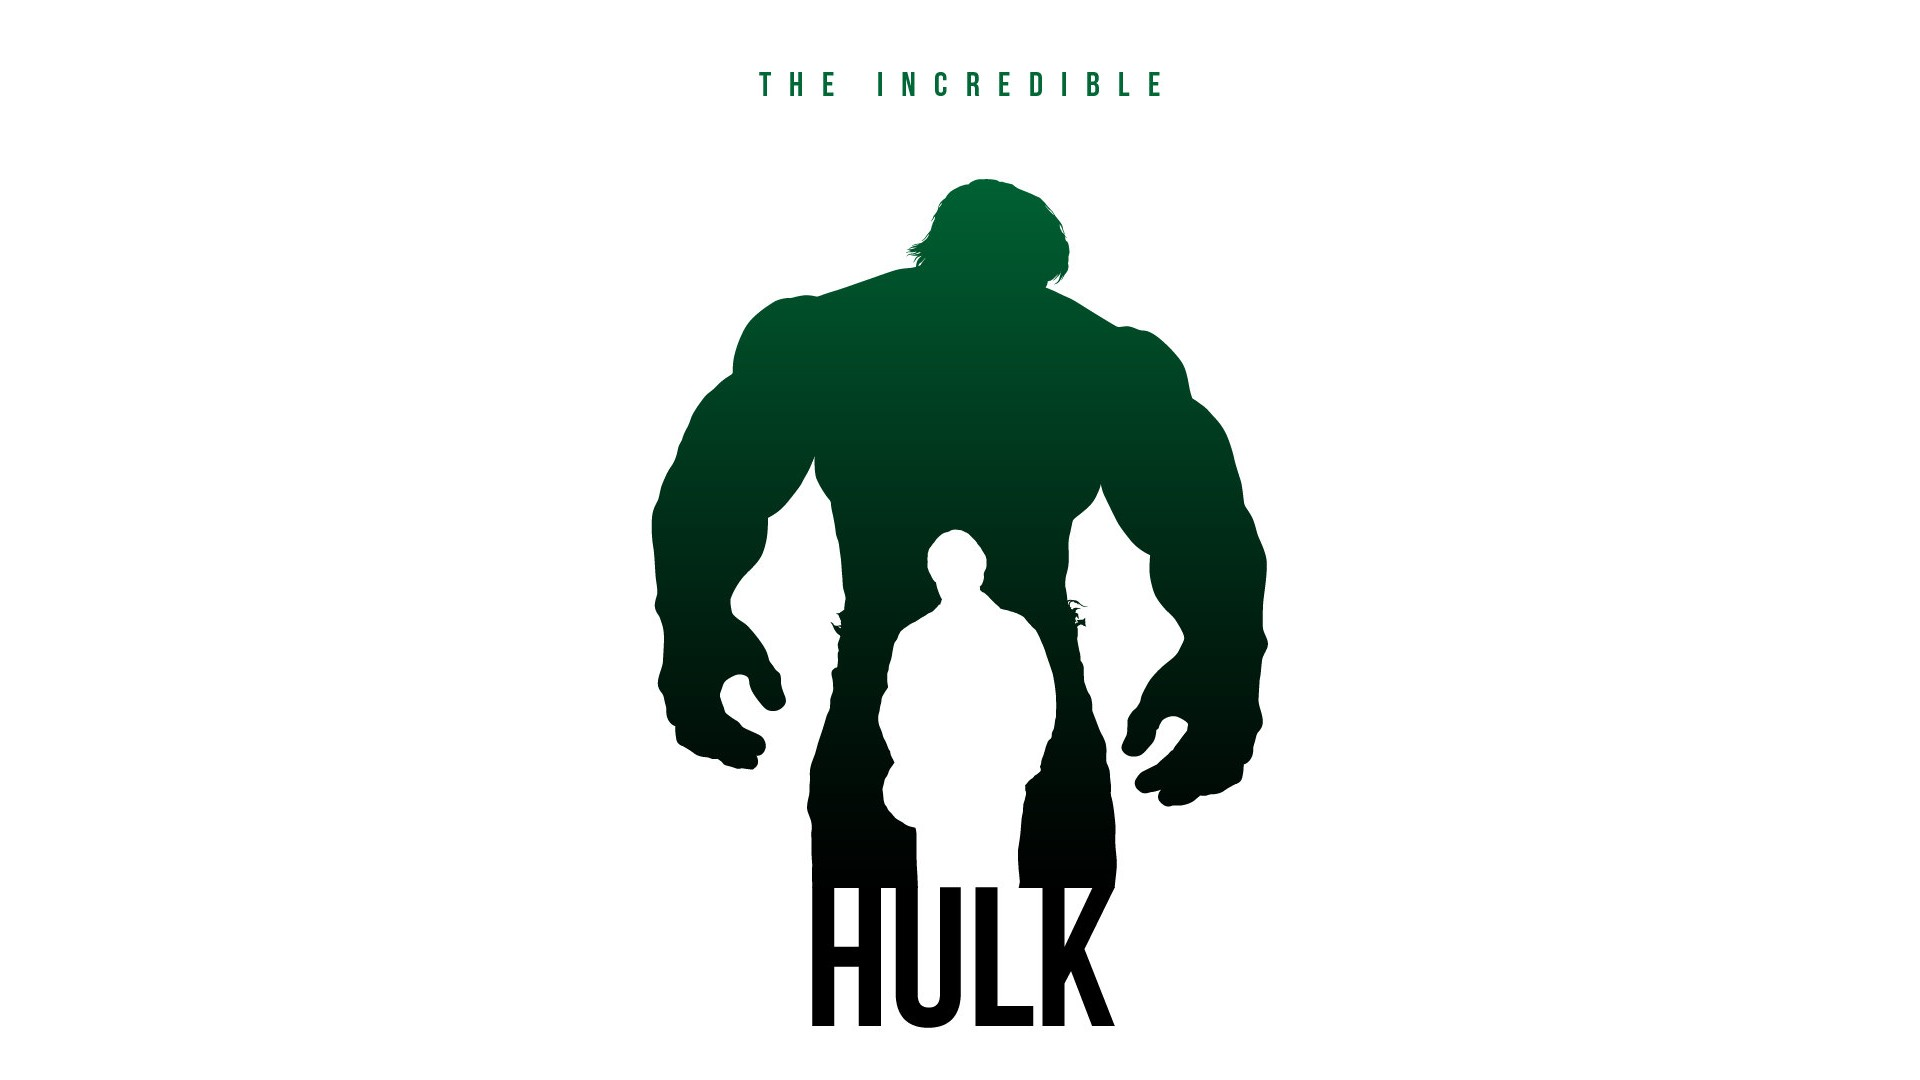 incredible hulk photos